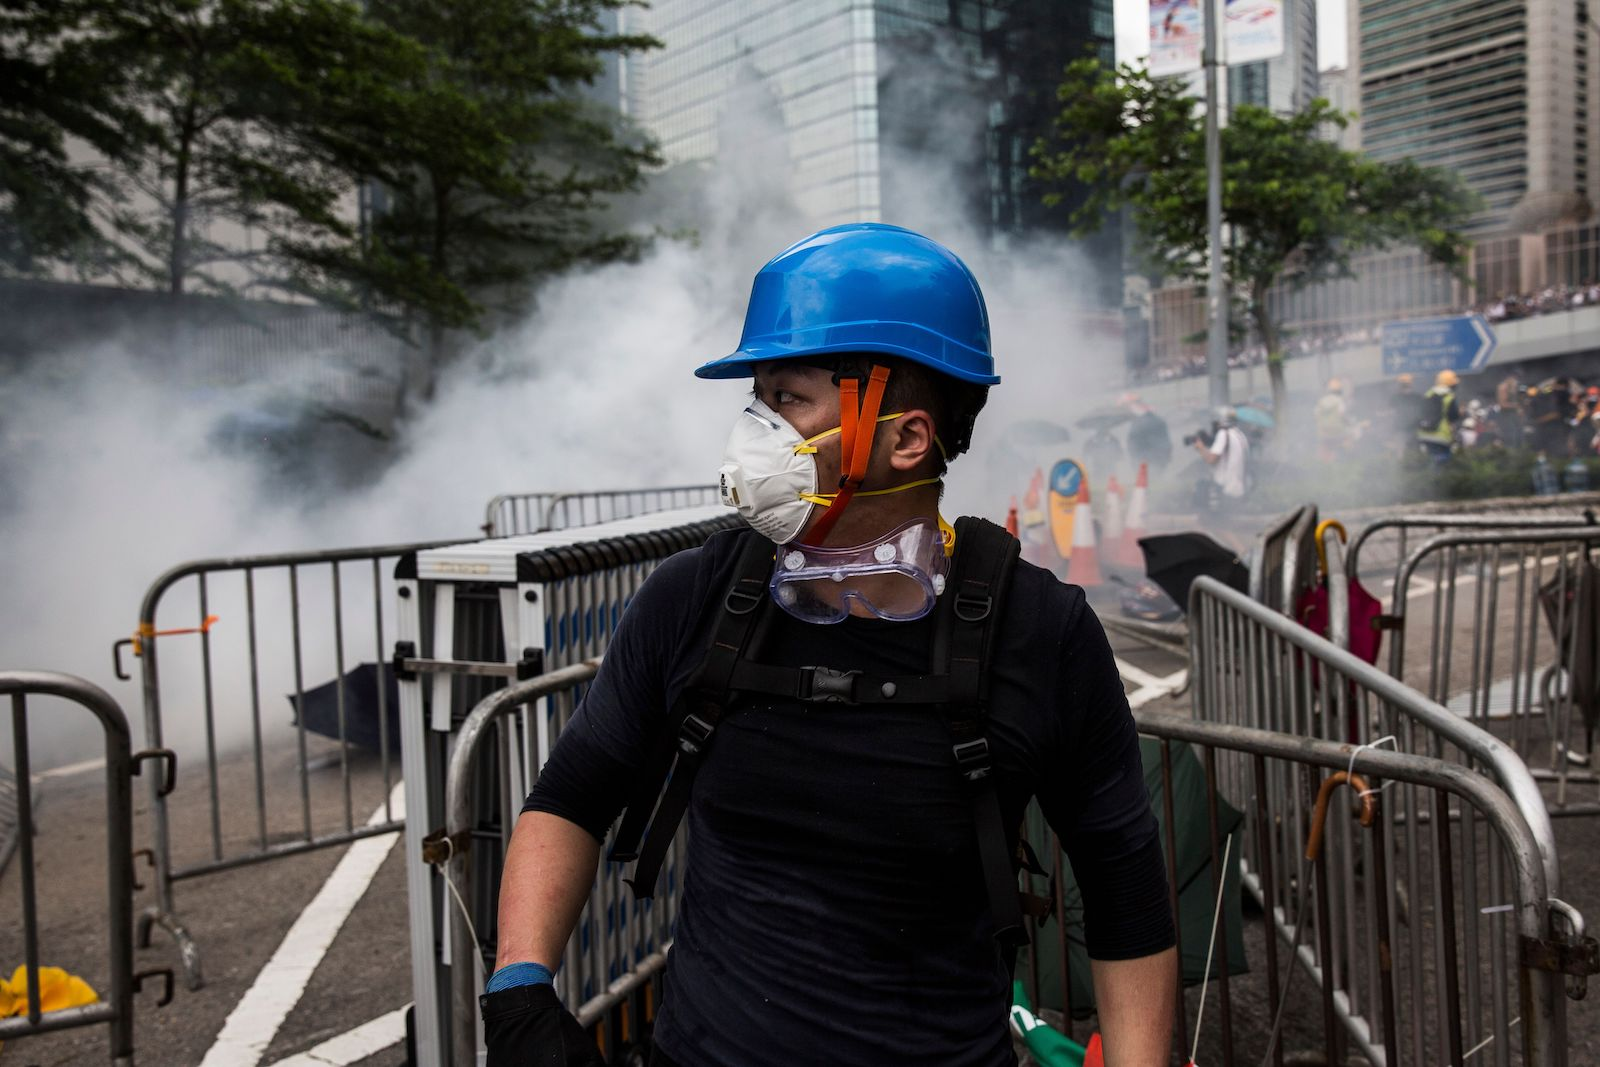 A protester wearing a mask reacts after police fired tear gas during demonstrations outside the Legislative Council Complex in Hong Kong on June 12.